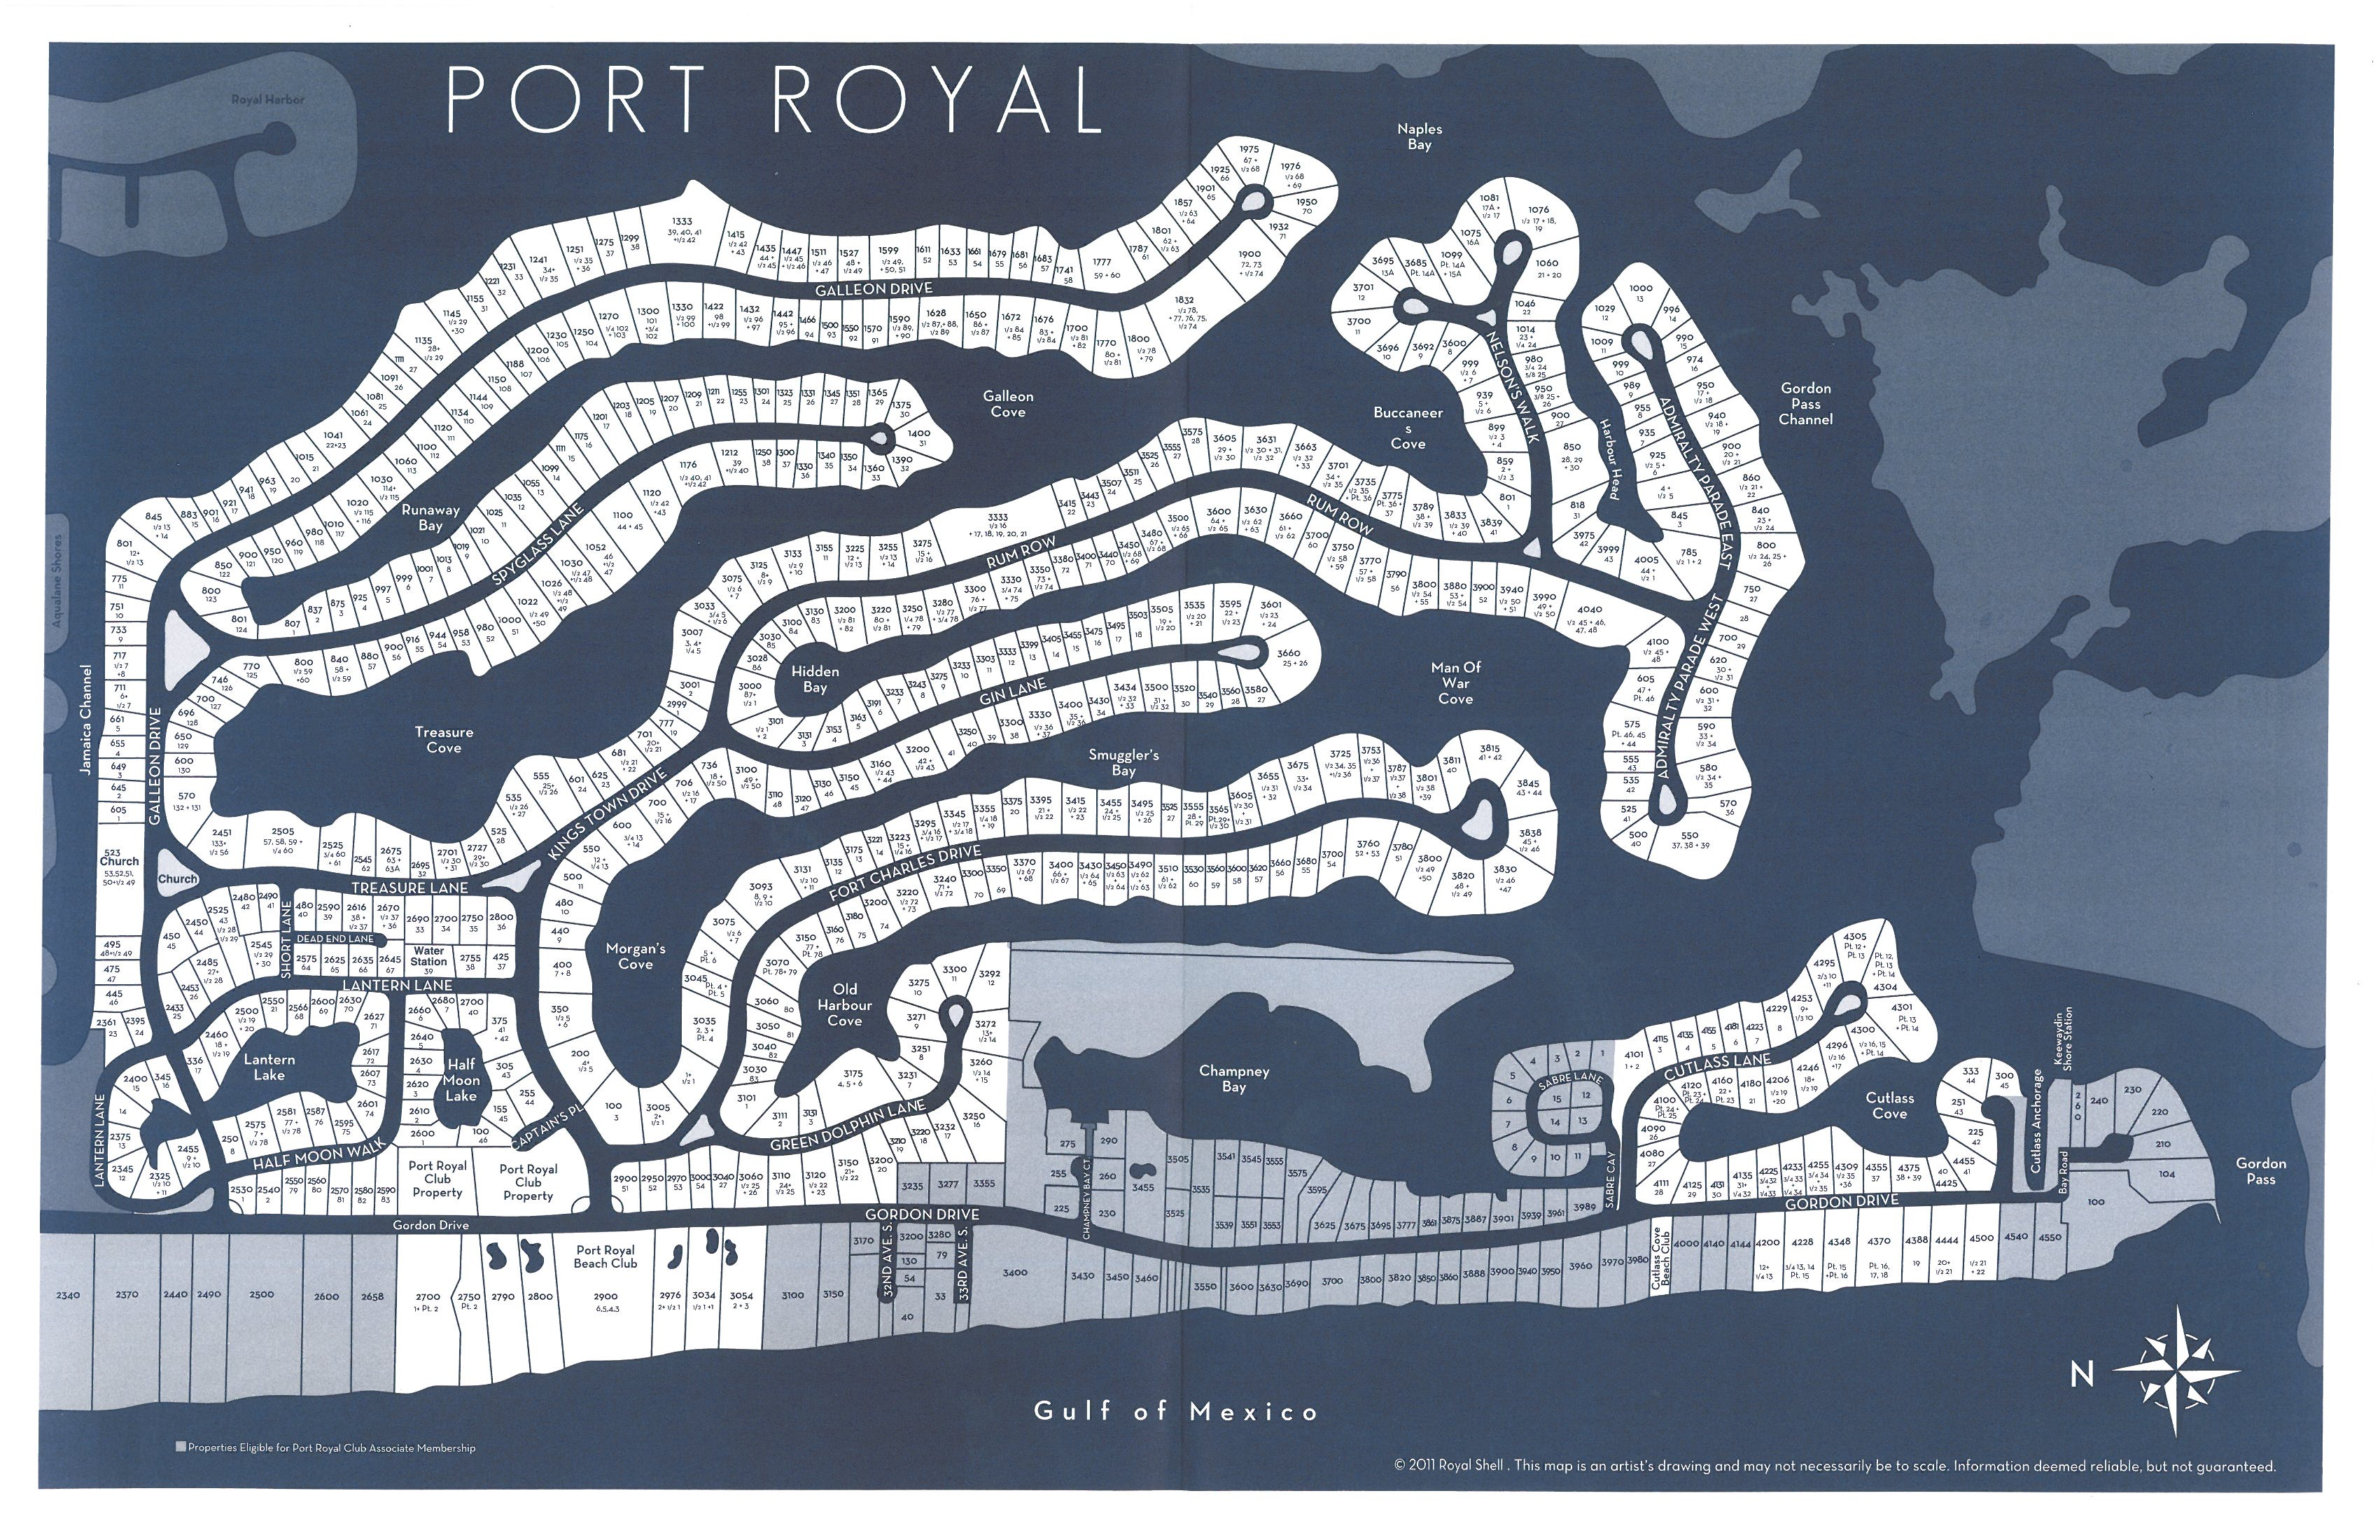 Welcome to Port Royal Florida Port Royal Maps - Welcome to Port ...